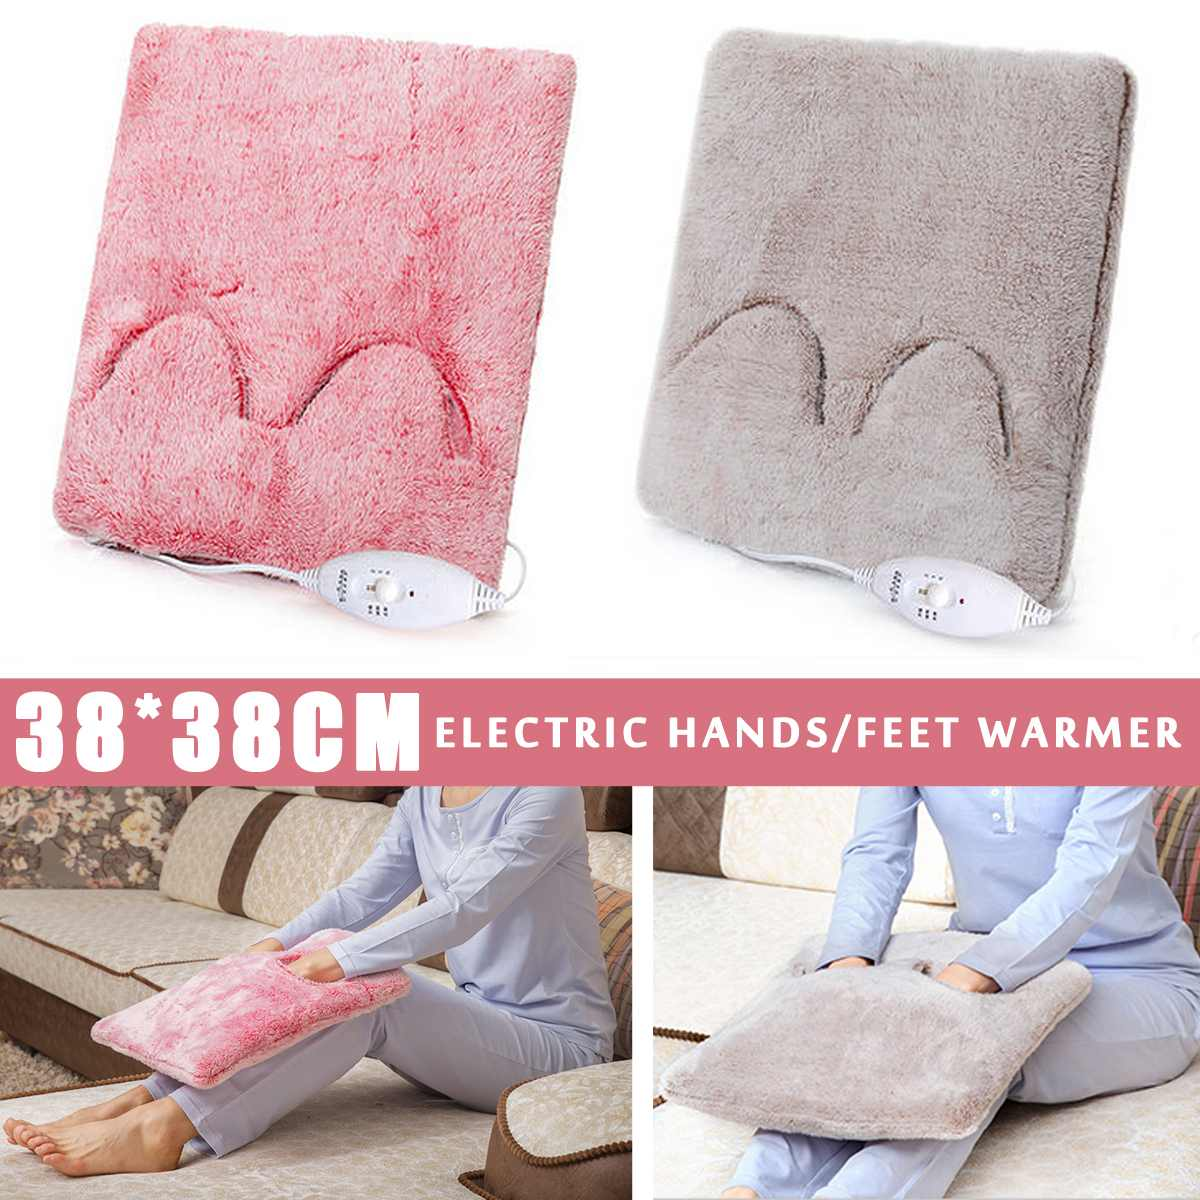 waterproof electric heating pad heater warmer mat blanket for pet 220V Portable Electric Heating Hands Feet Warmer Heater Blanket Pad Winter Seats Warmer Cushion Mat Removable and Washable  20W